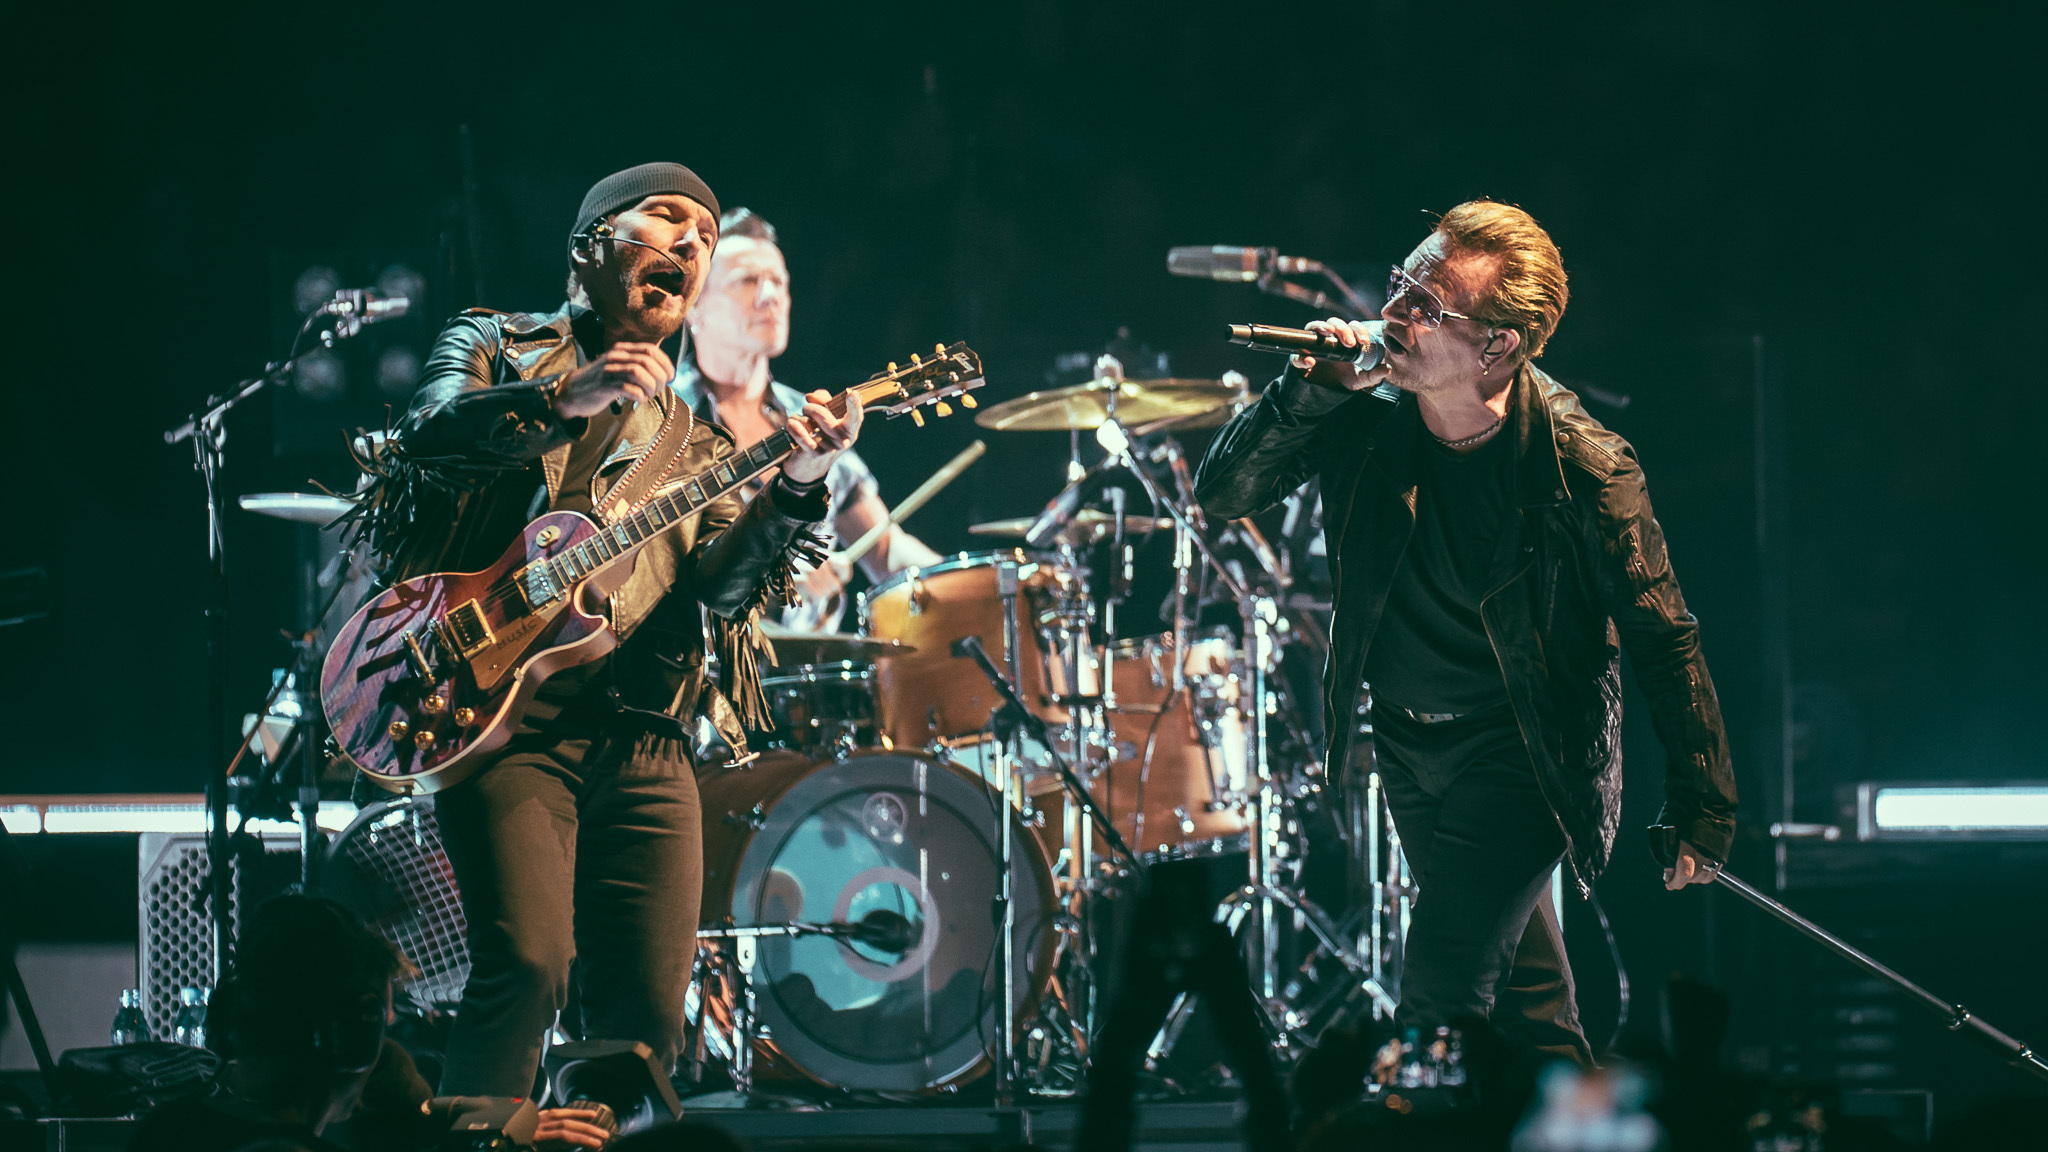 Photos: U2 at the United Center